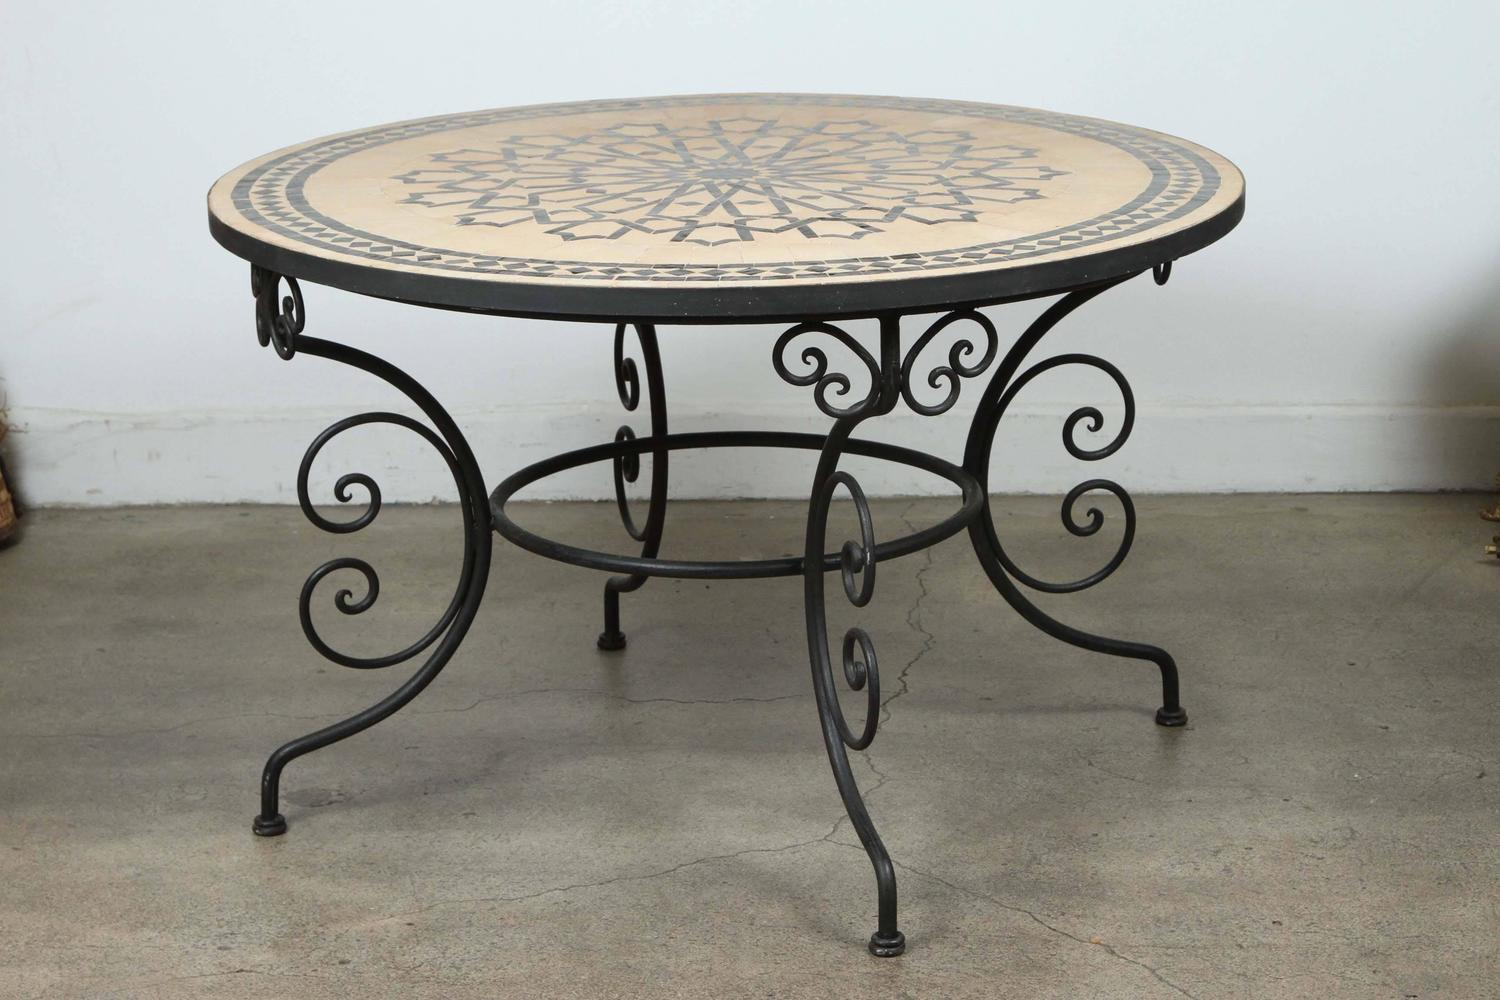 Outdoor Furniture Dining Set Sale Moroccan Outdoor Round Mosaic Tile Dining Table On Iron Base 47 In